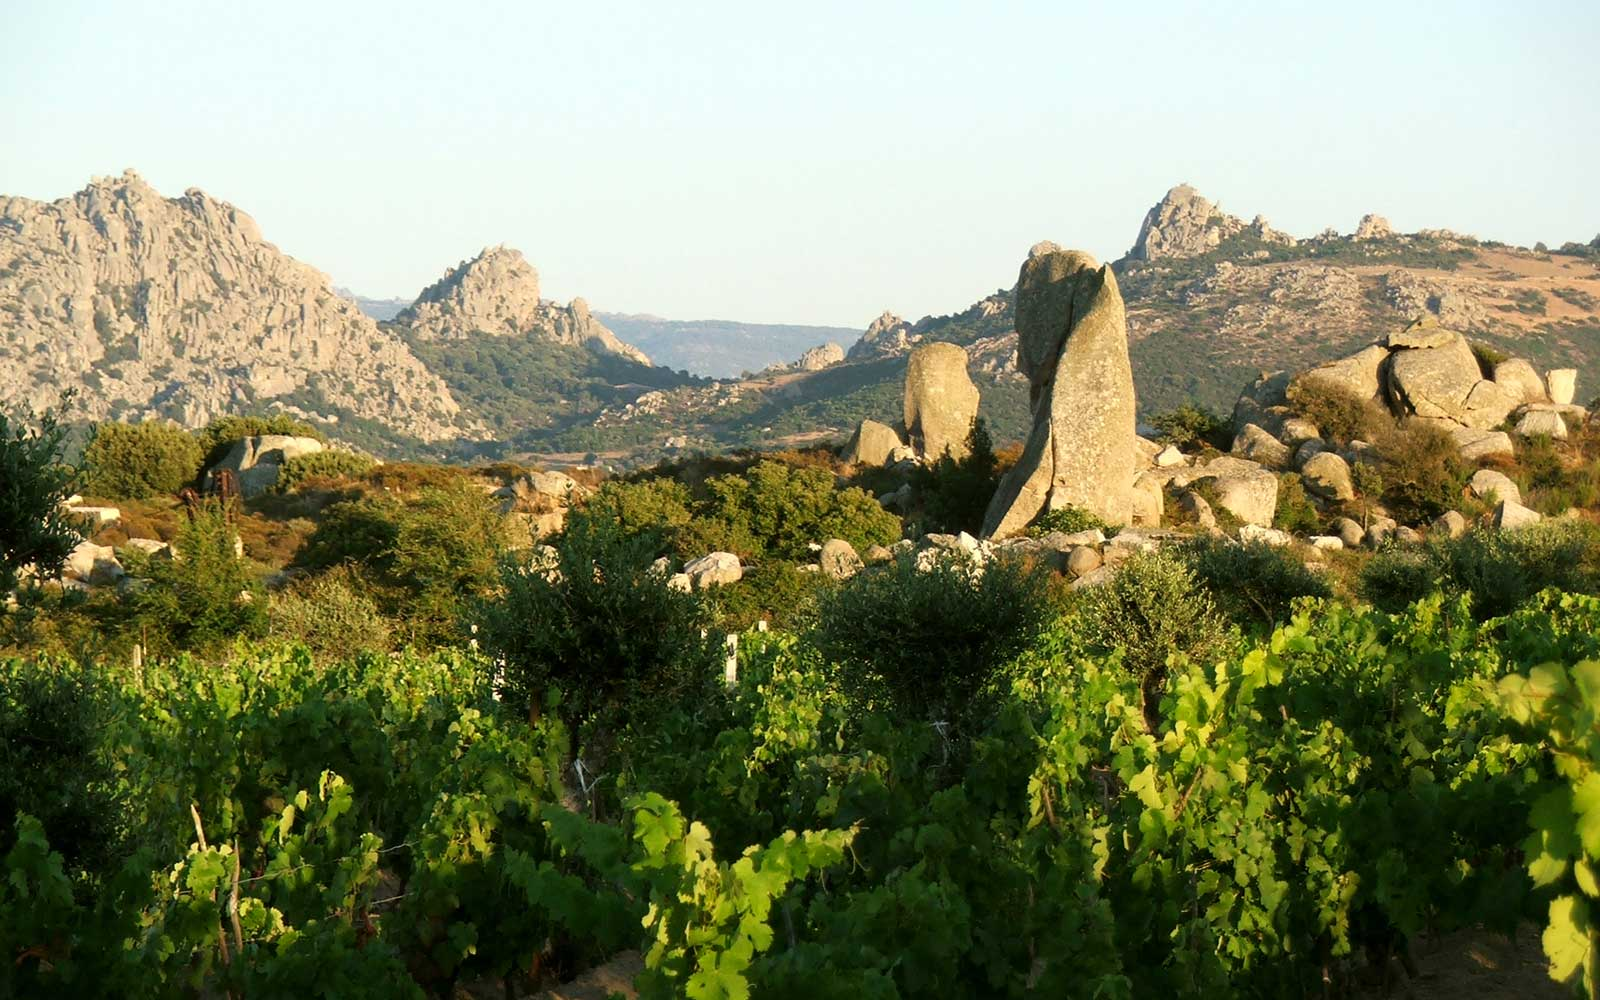 """The Valley Of The Moon"" - an amazing landscape on the Italian island of Sardinia"